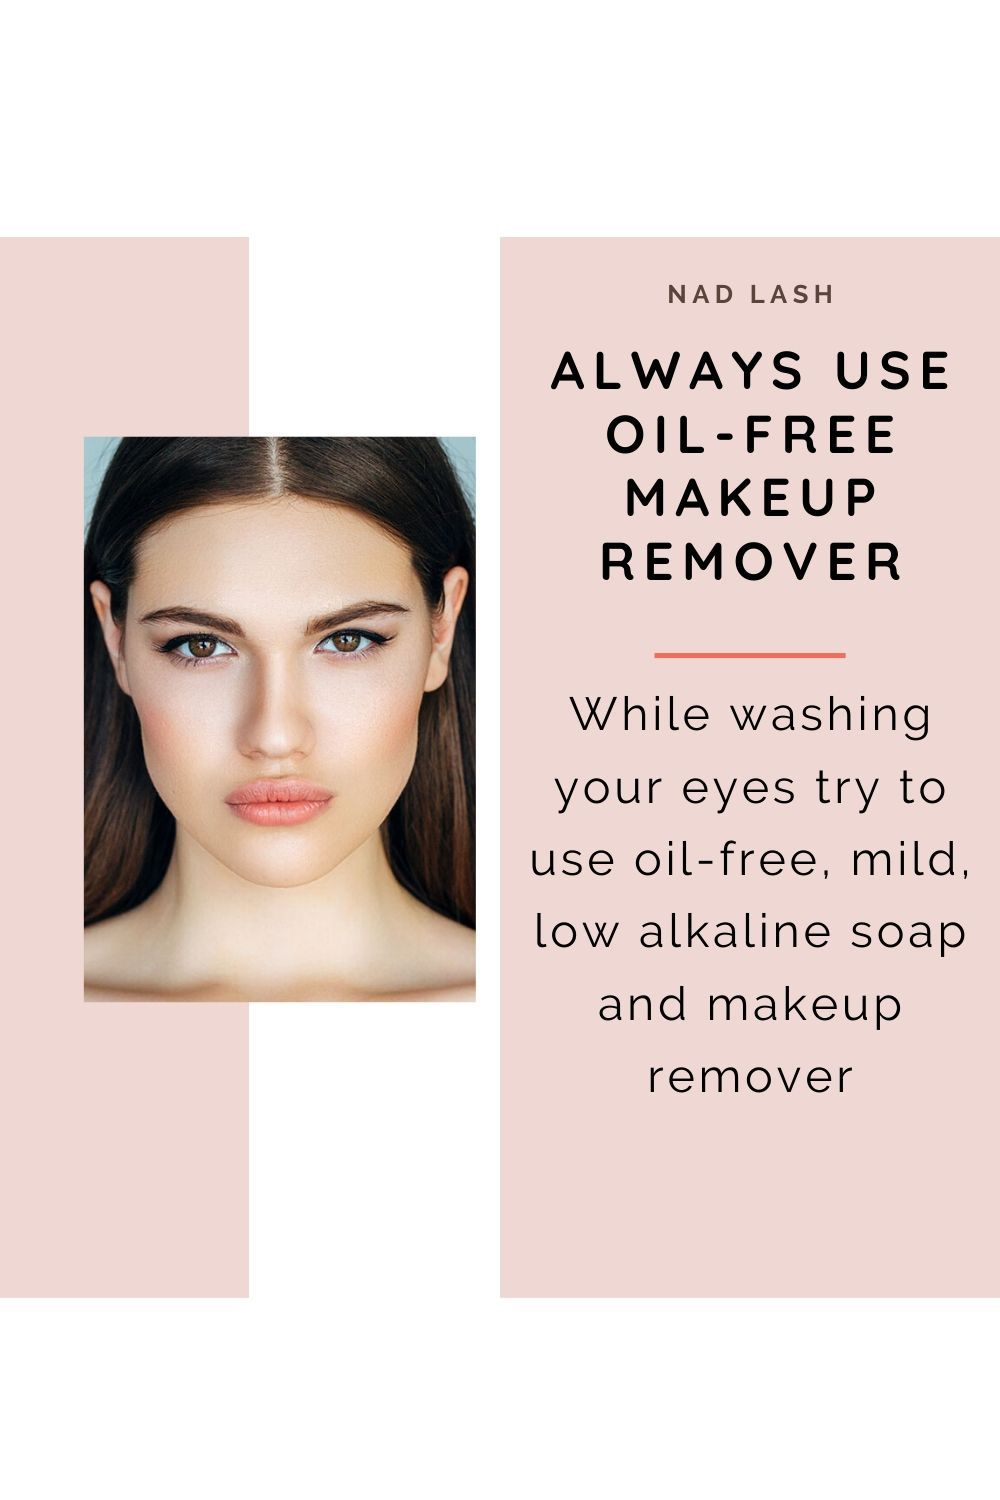 Lash Extension Use Oil Free Makeup Remover In 2020 Oil Free Makeup Remover Lashes Lash Extensions